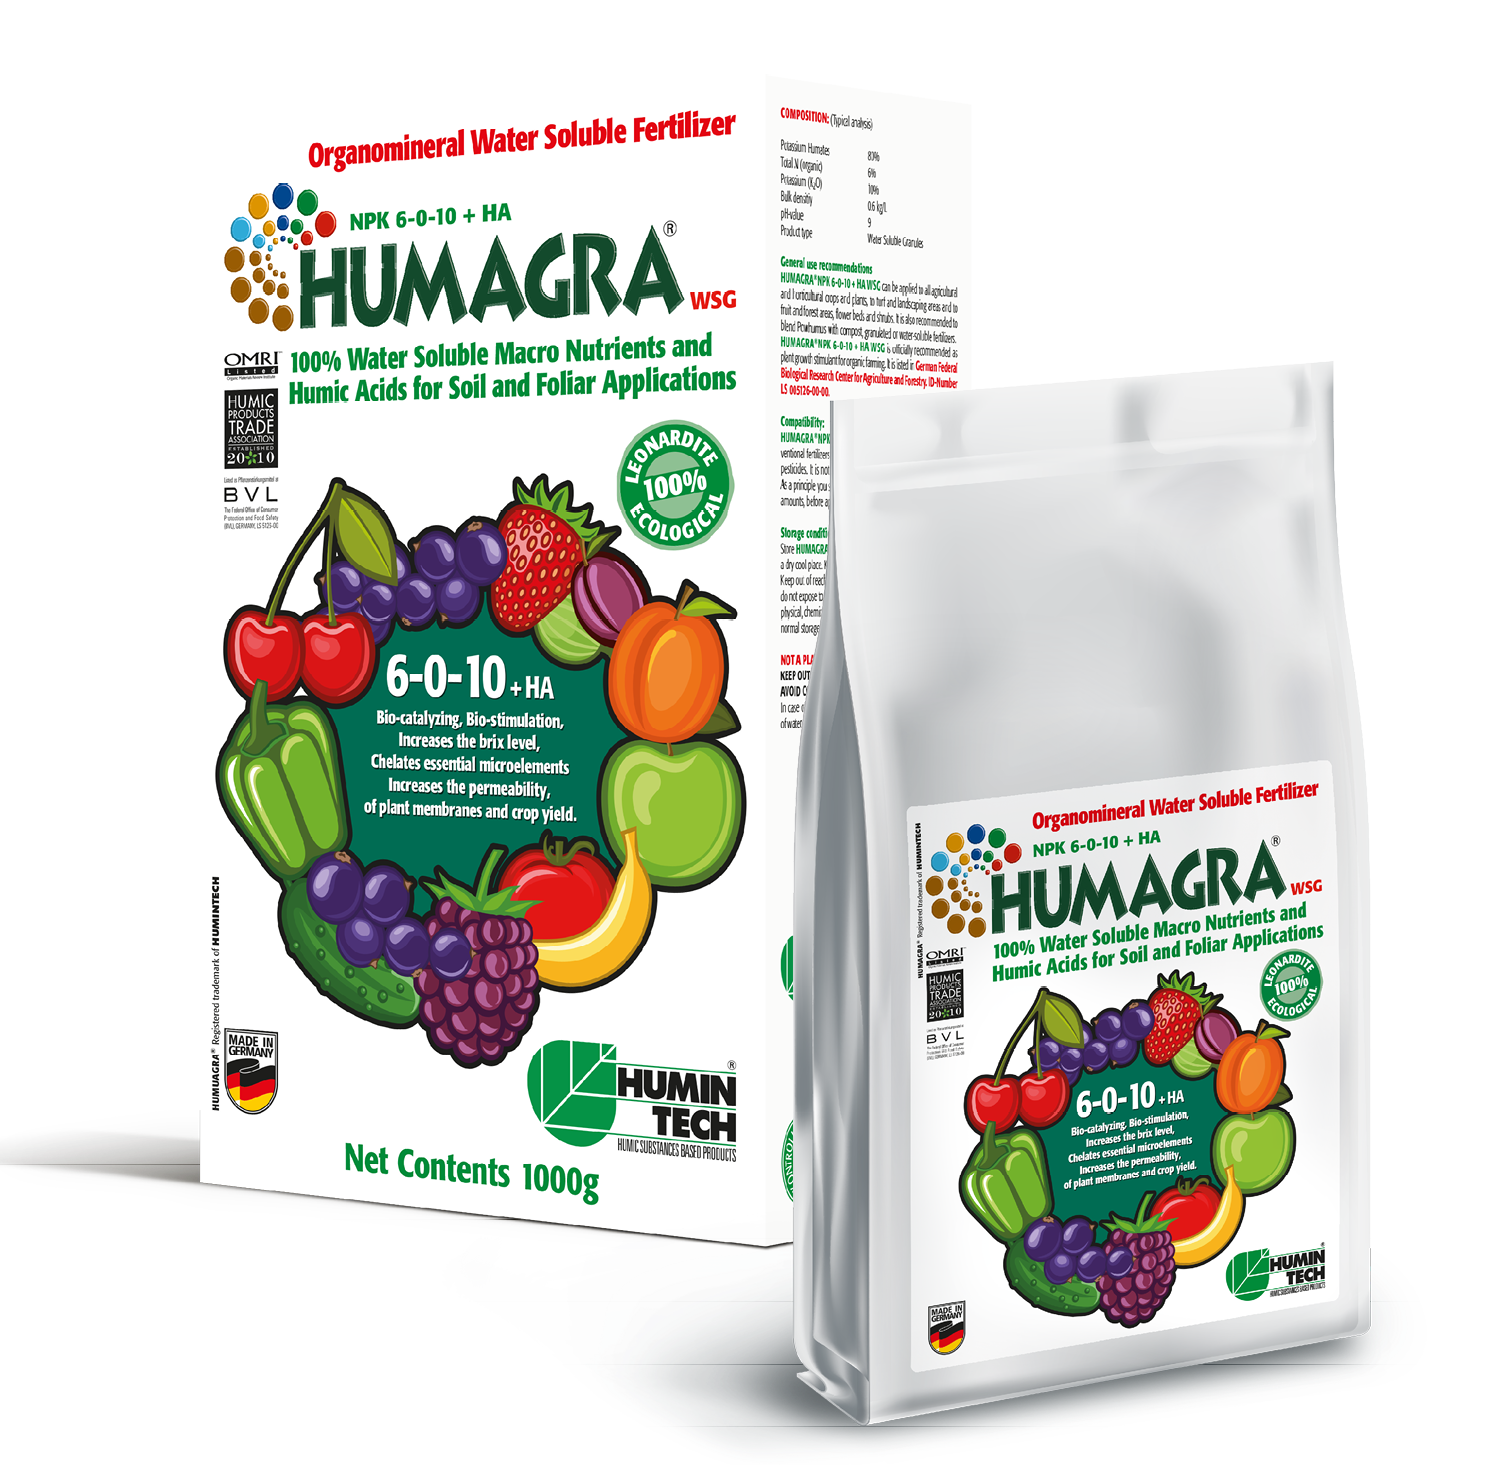 HUMAGRA NPK 6-0-10 + HA WSG Organomineral Water Soluble Fertilizer